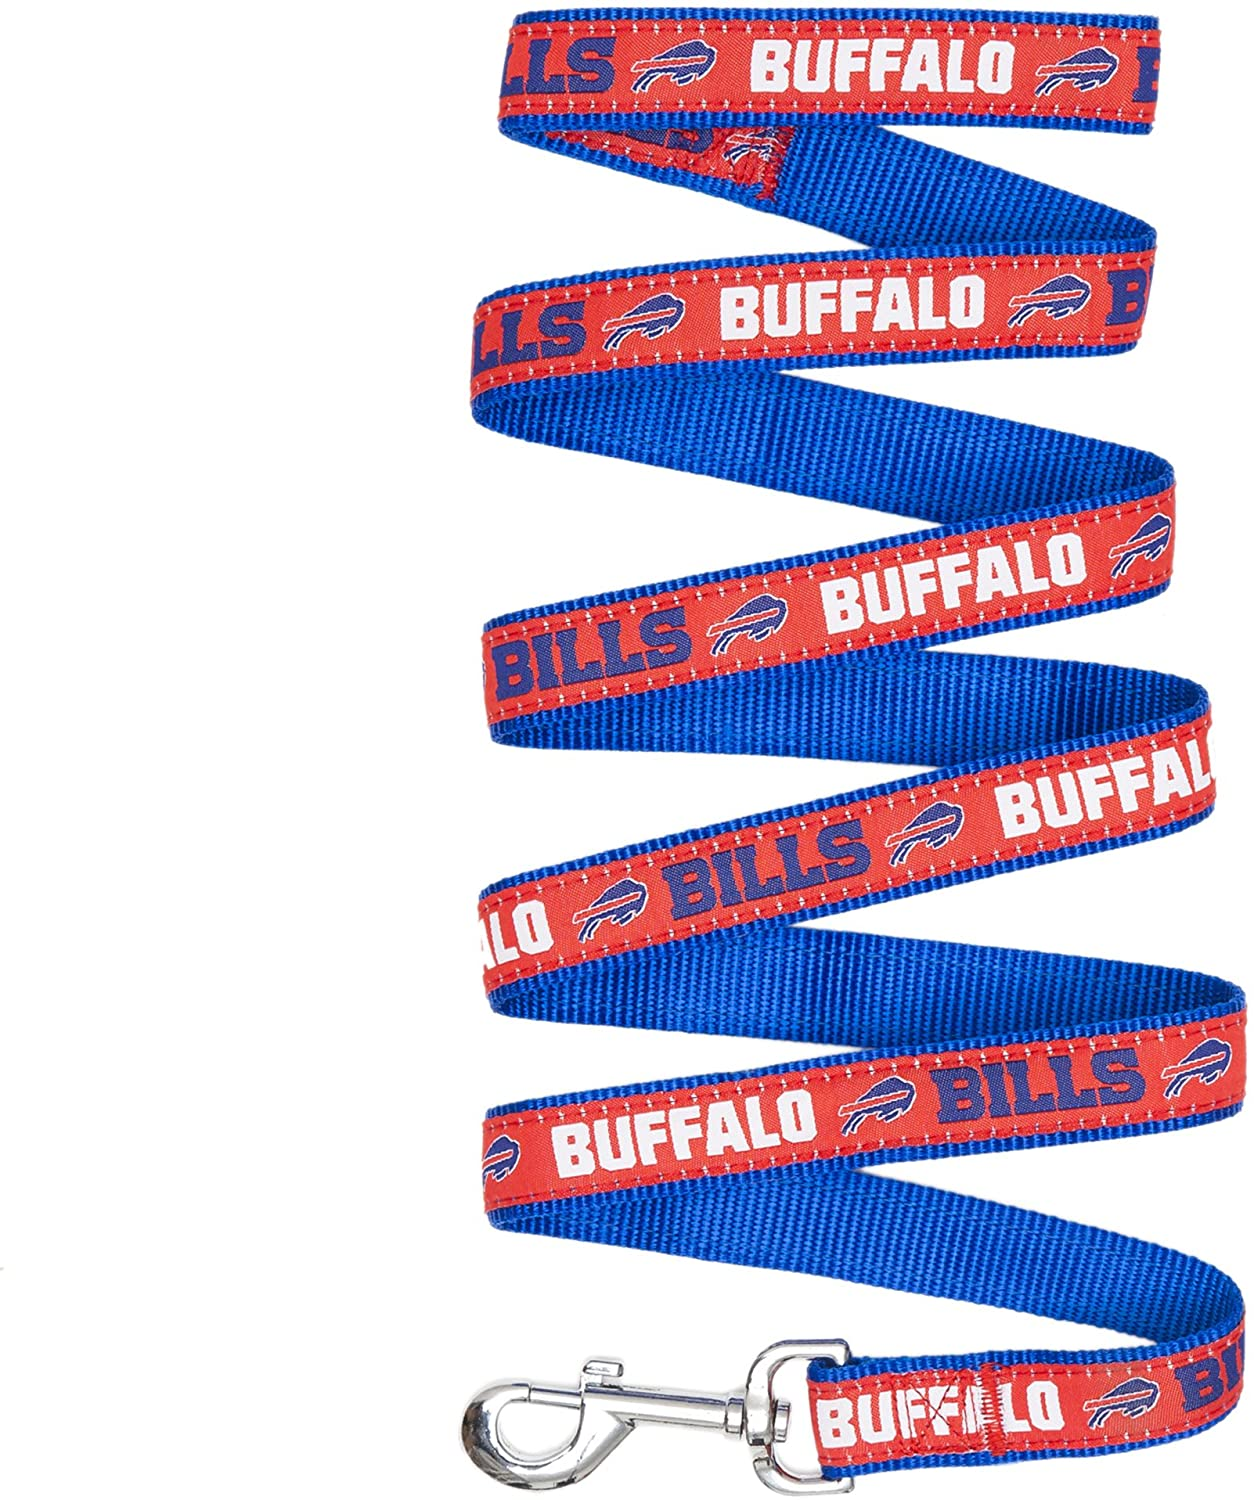 Pets First NFL BUFFALO BILLS Dog Leash & Cat Leash for Pets, SIZE: Small, STURDY LEASH, DURABLE, FASHIONABLE & AFFORDABLE!